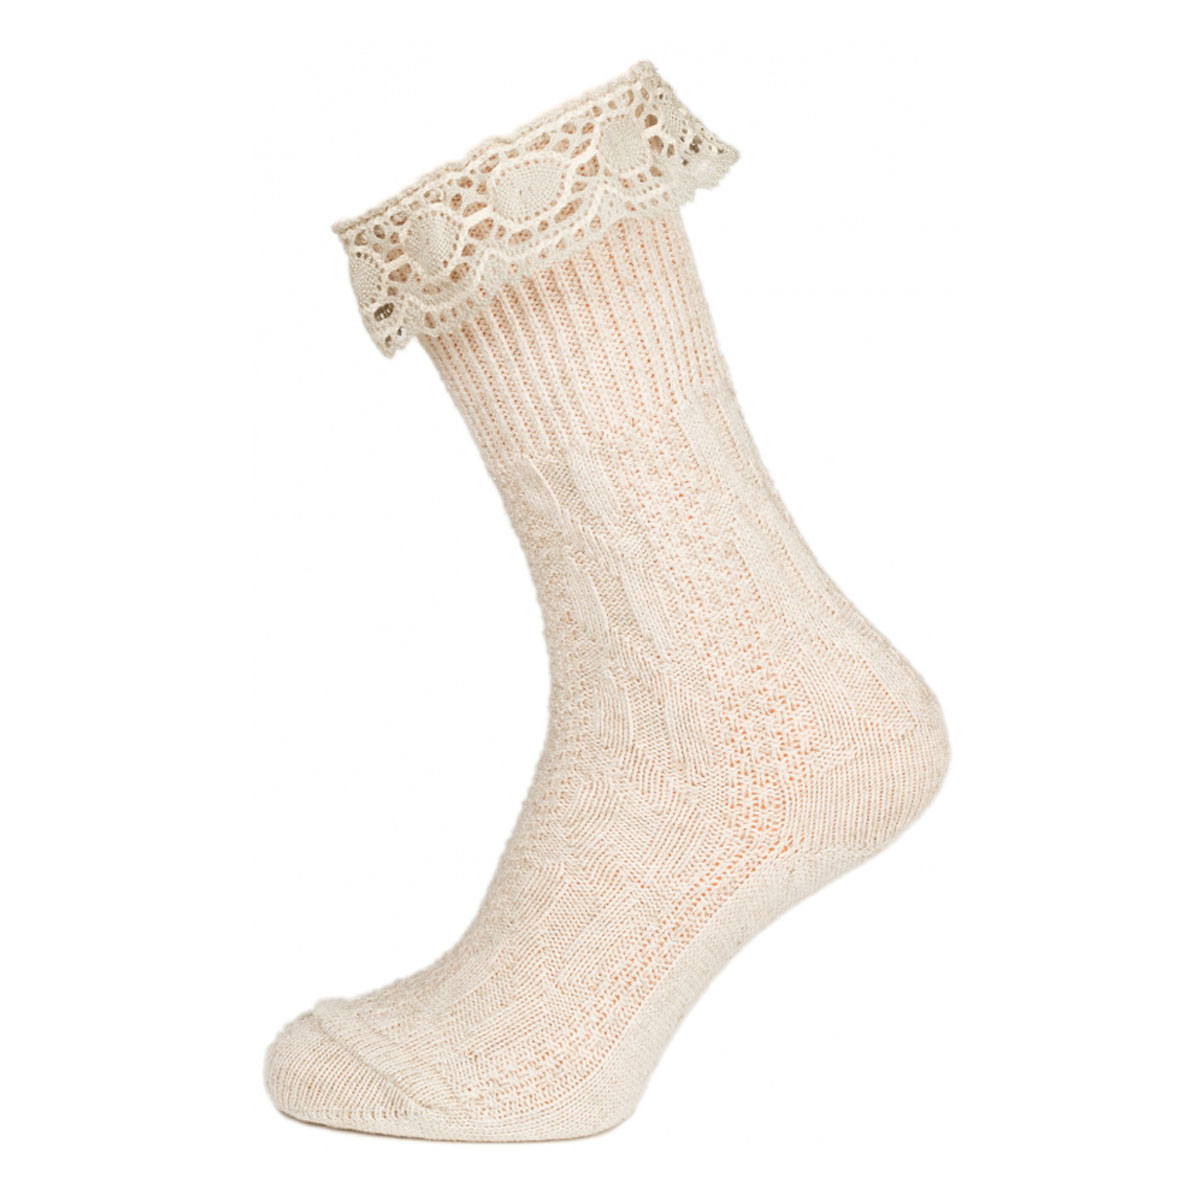 LIGHT BROWN FEMALE SOCKS